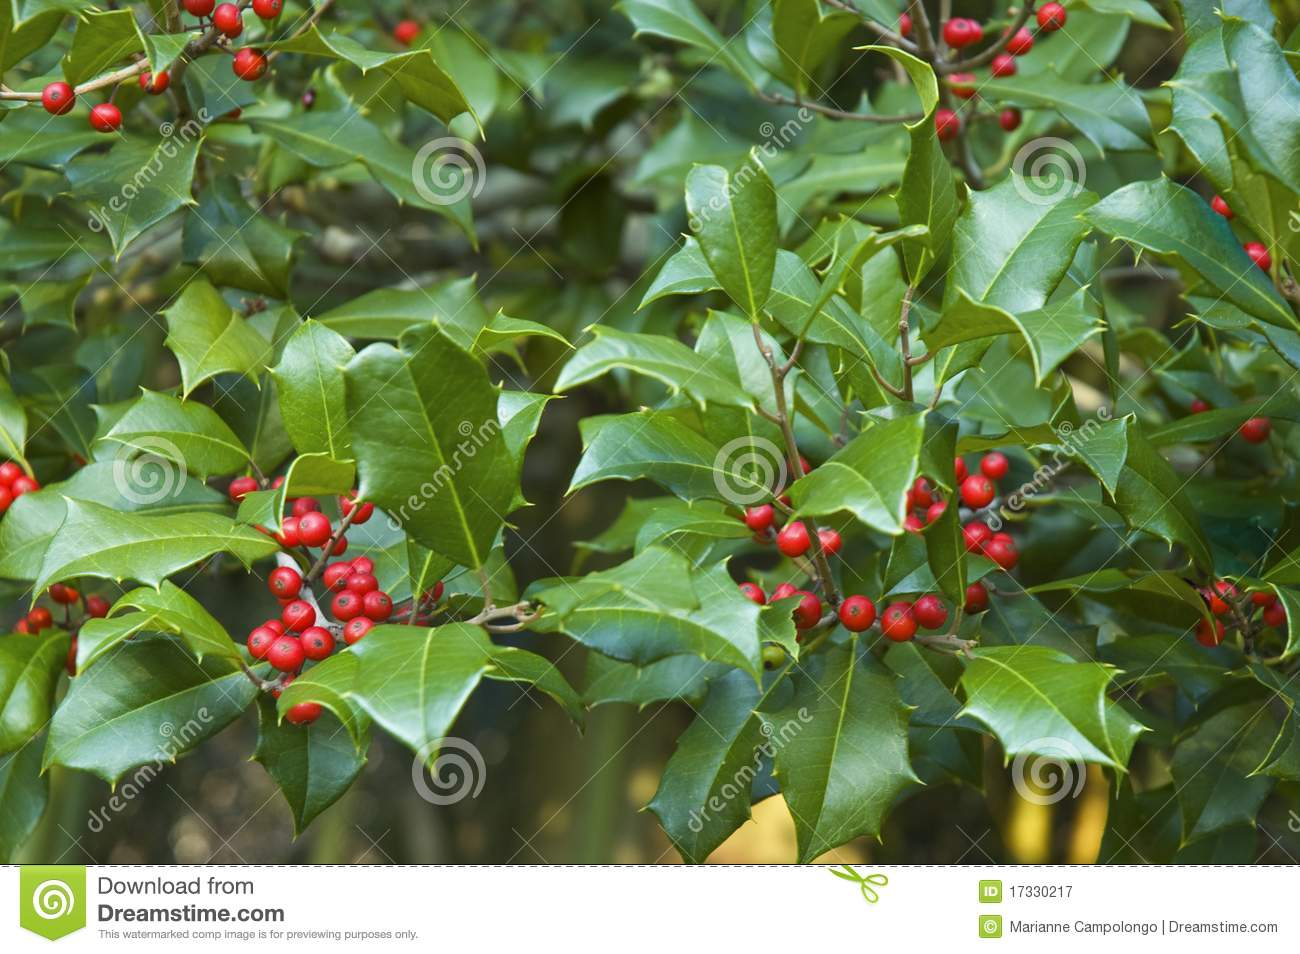 holly branches on american holly tree ilex opaca with green leaves ...